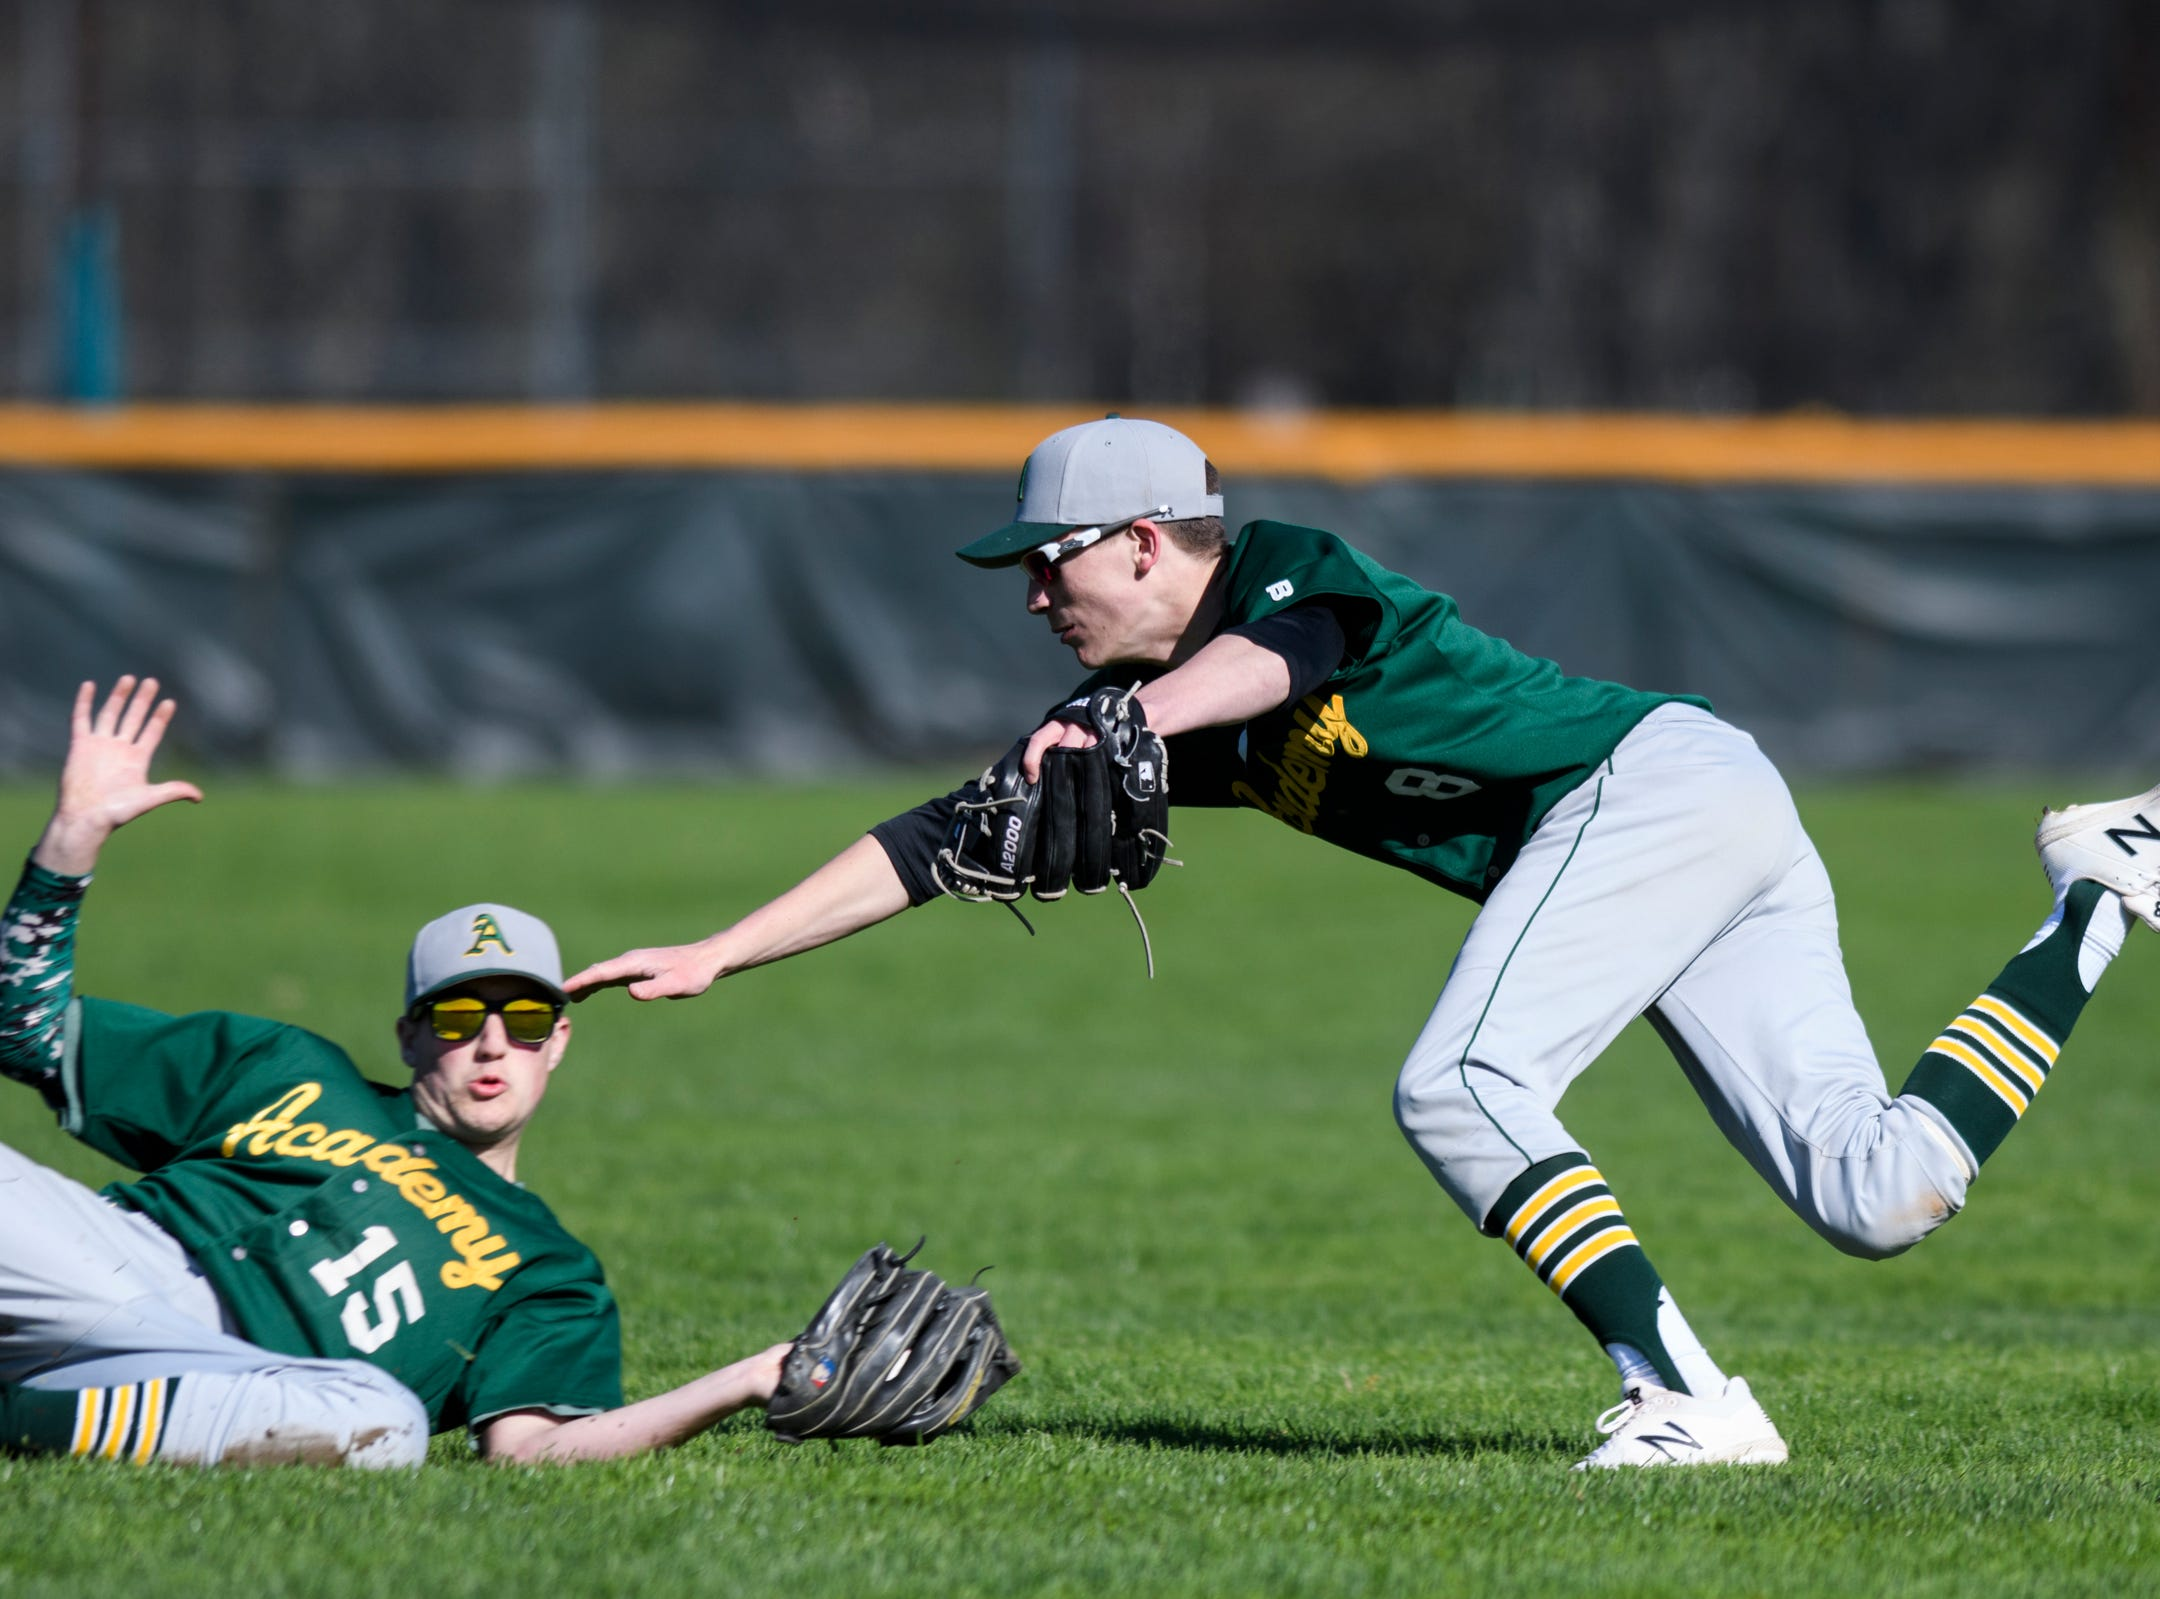 BFA's Shane Makes (15) dives to catch the ball in front of BFA's Jacob Beware (8) during the high school baseball game between BFA St. Albans and Rice at Rice Memorial High School on Wednesday afternoon May 8, 2019 in South Burlington, Vermont.